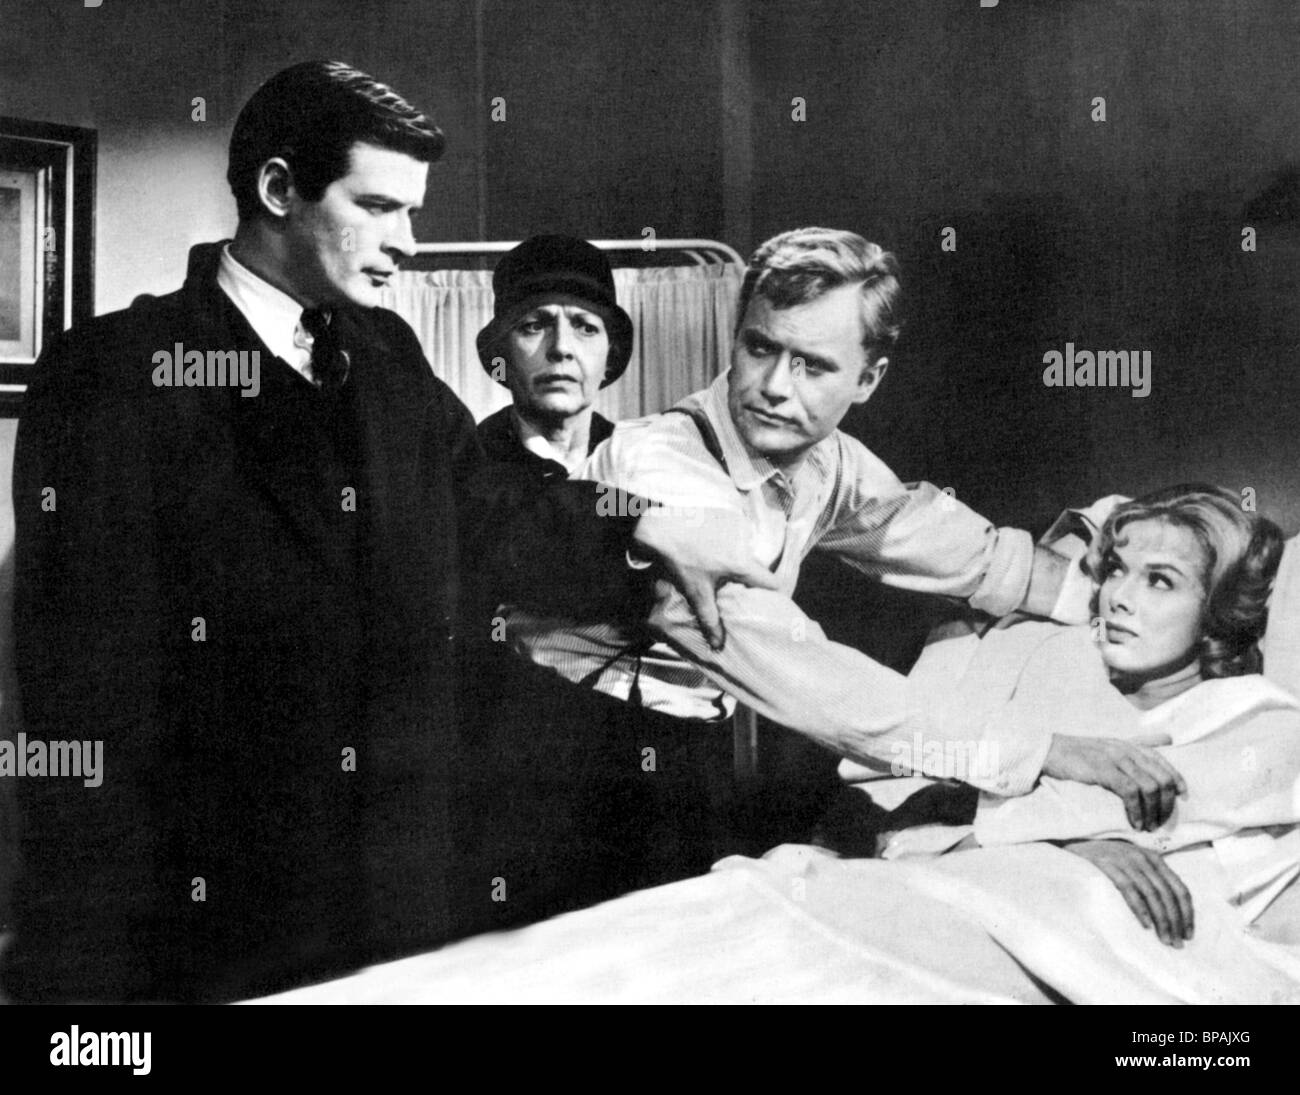 RAY DANTON, VIC MORROW, LESLIE PARRISH, PORTRAIT OF A MOBSTER, 1961 - Stock Image